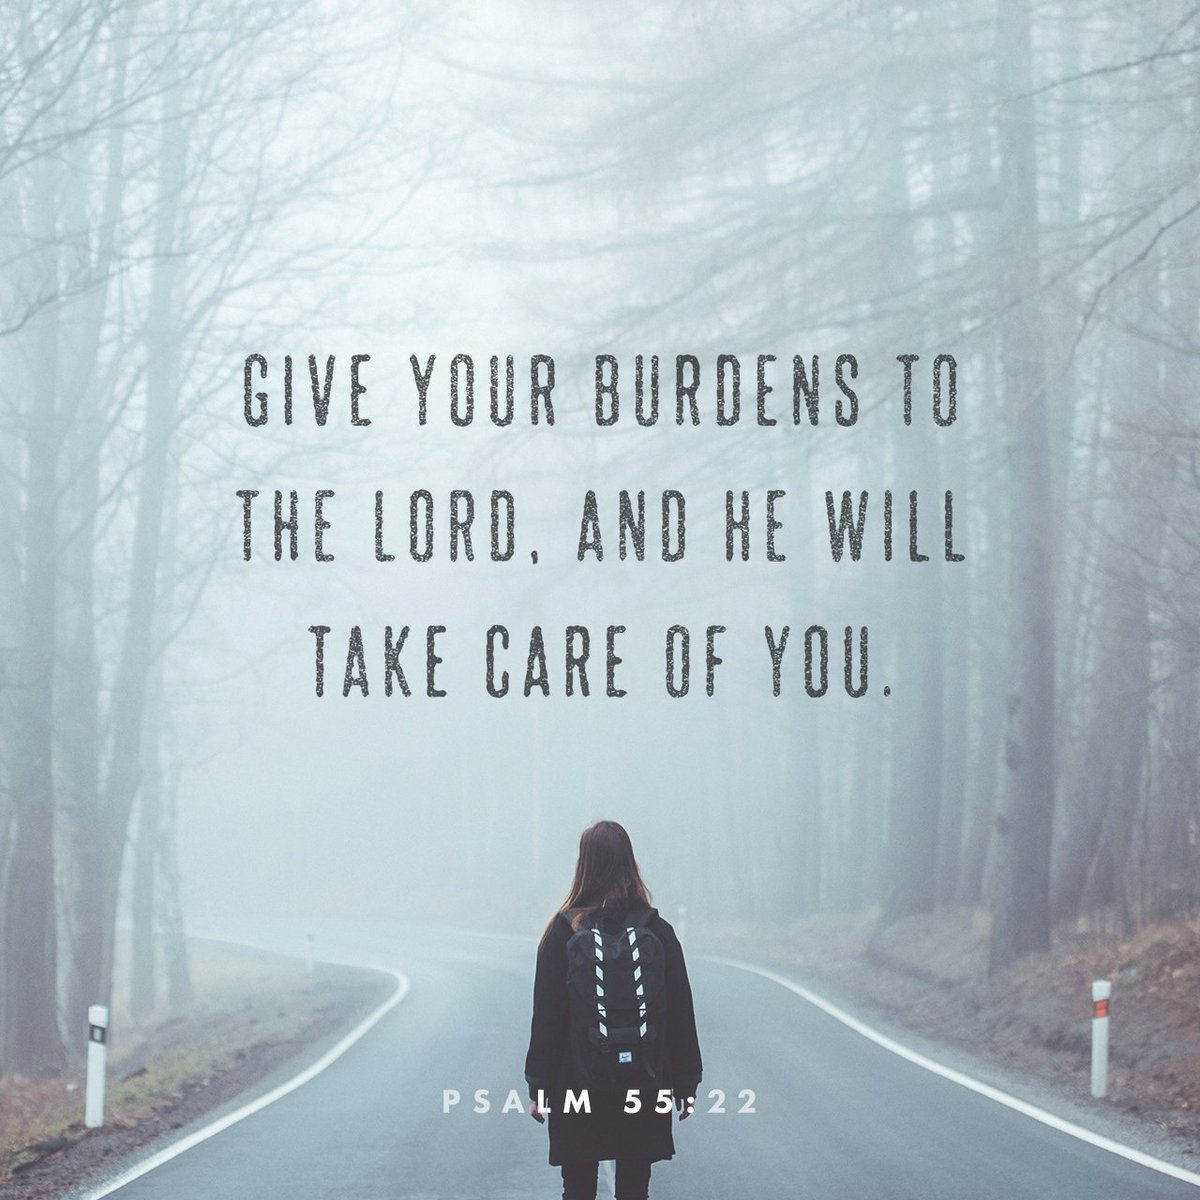 Give your burdens to the LORD, and he will take care of you. He will not permit the godly… https://t.co/QxvMwtZZhY https://t.co/aT27X7S5Ym